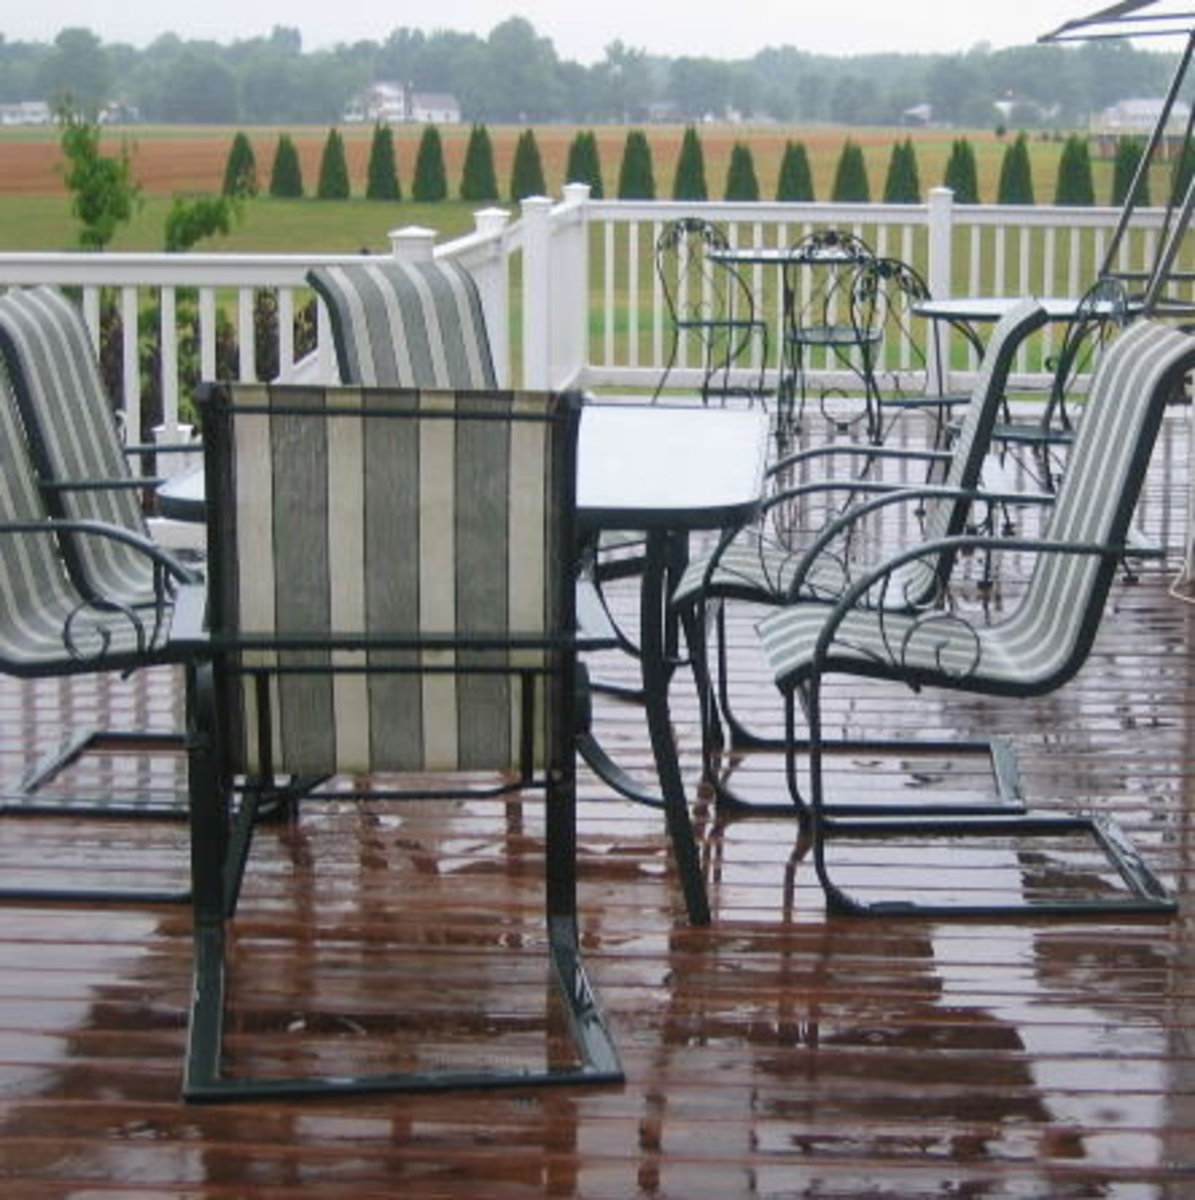 With a view like this, you'll want some outdoor seating at your vacation home.